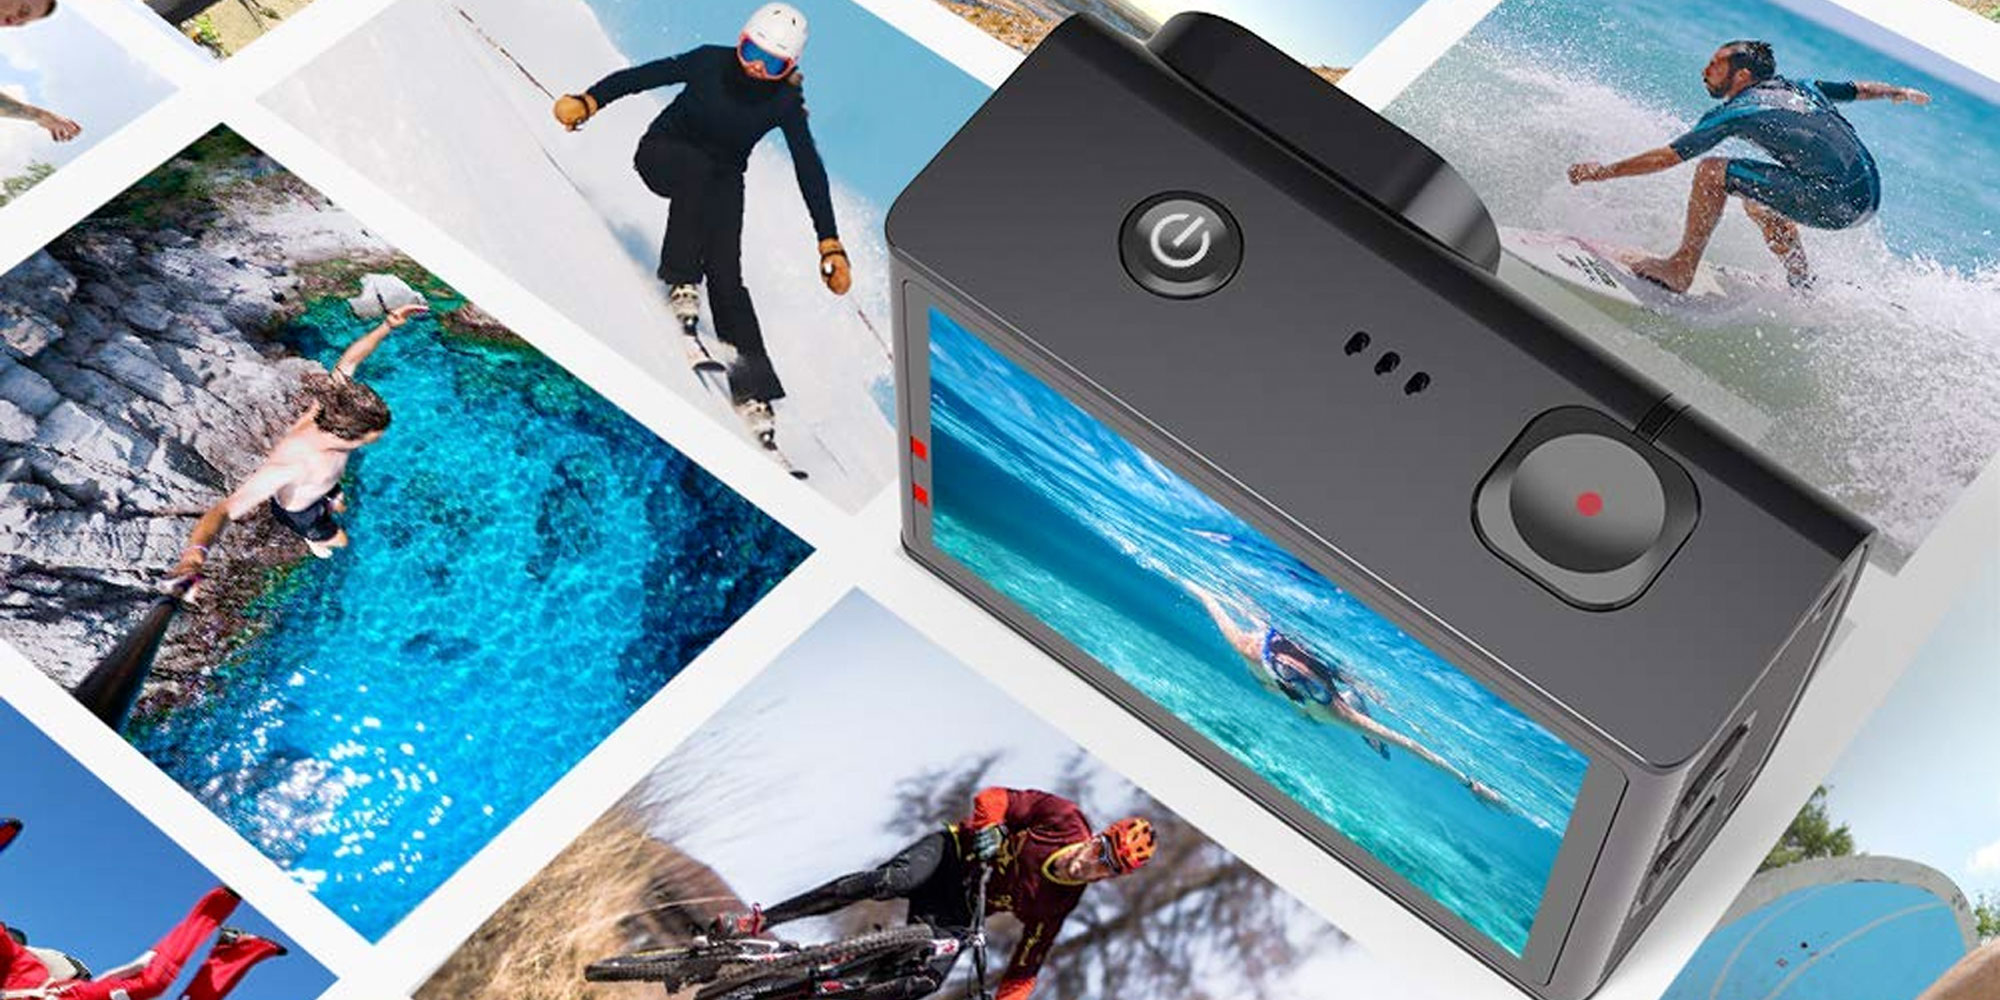 This action camera shoots 4K footage, is waterproof to 130 feet, more for $64 (Reg. $80)